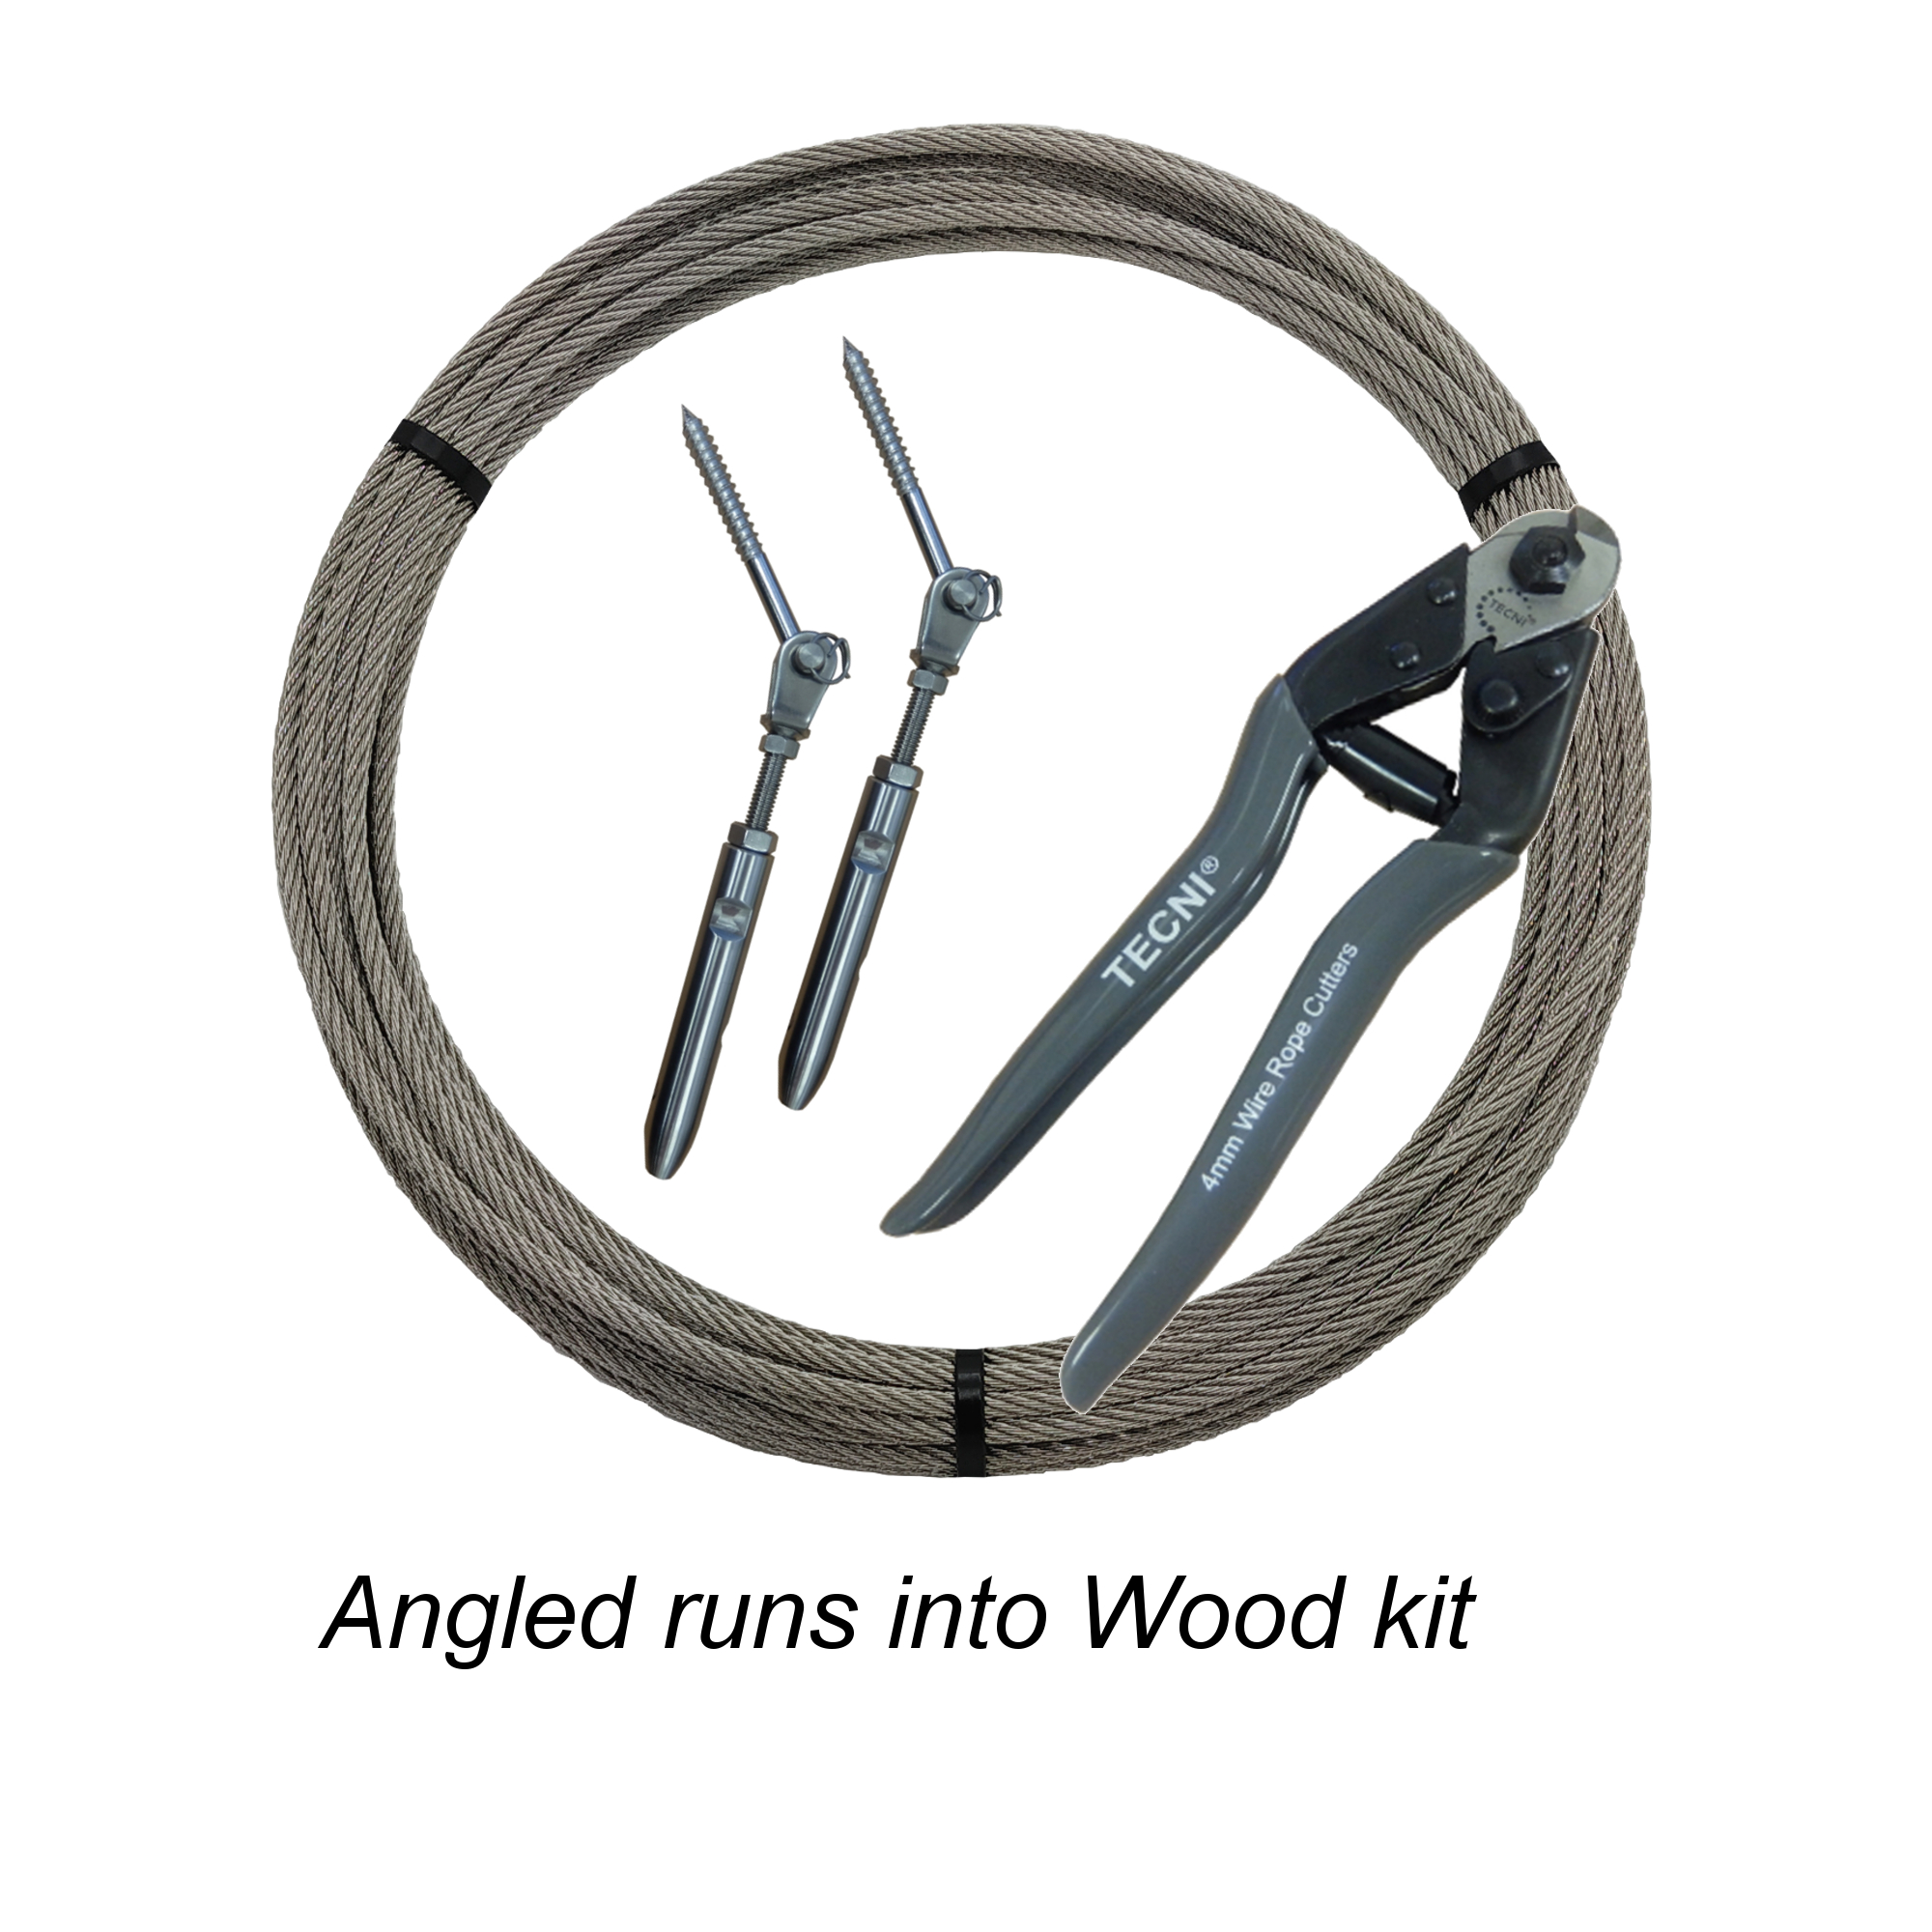 Angled Cable Runs into Wood Kit